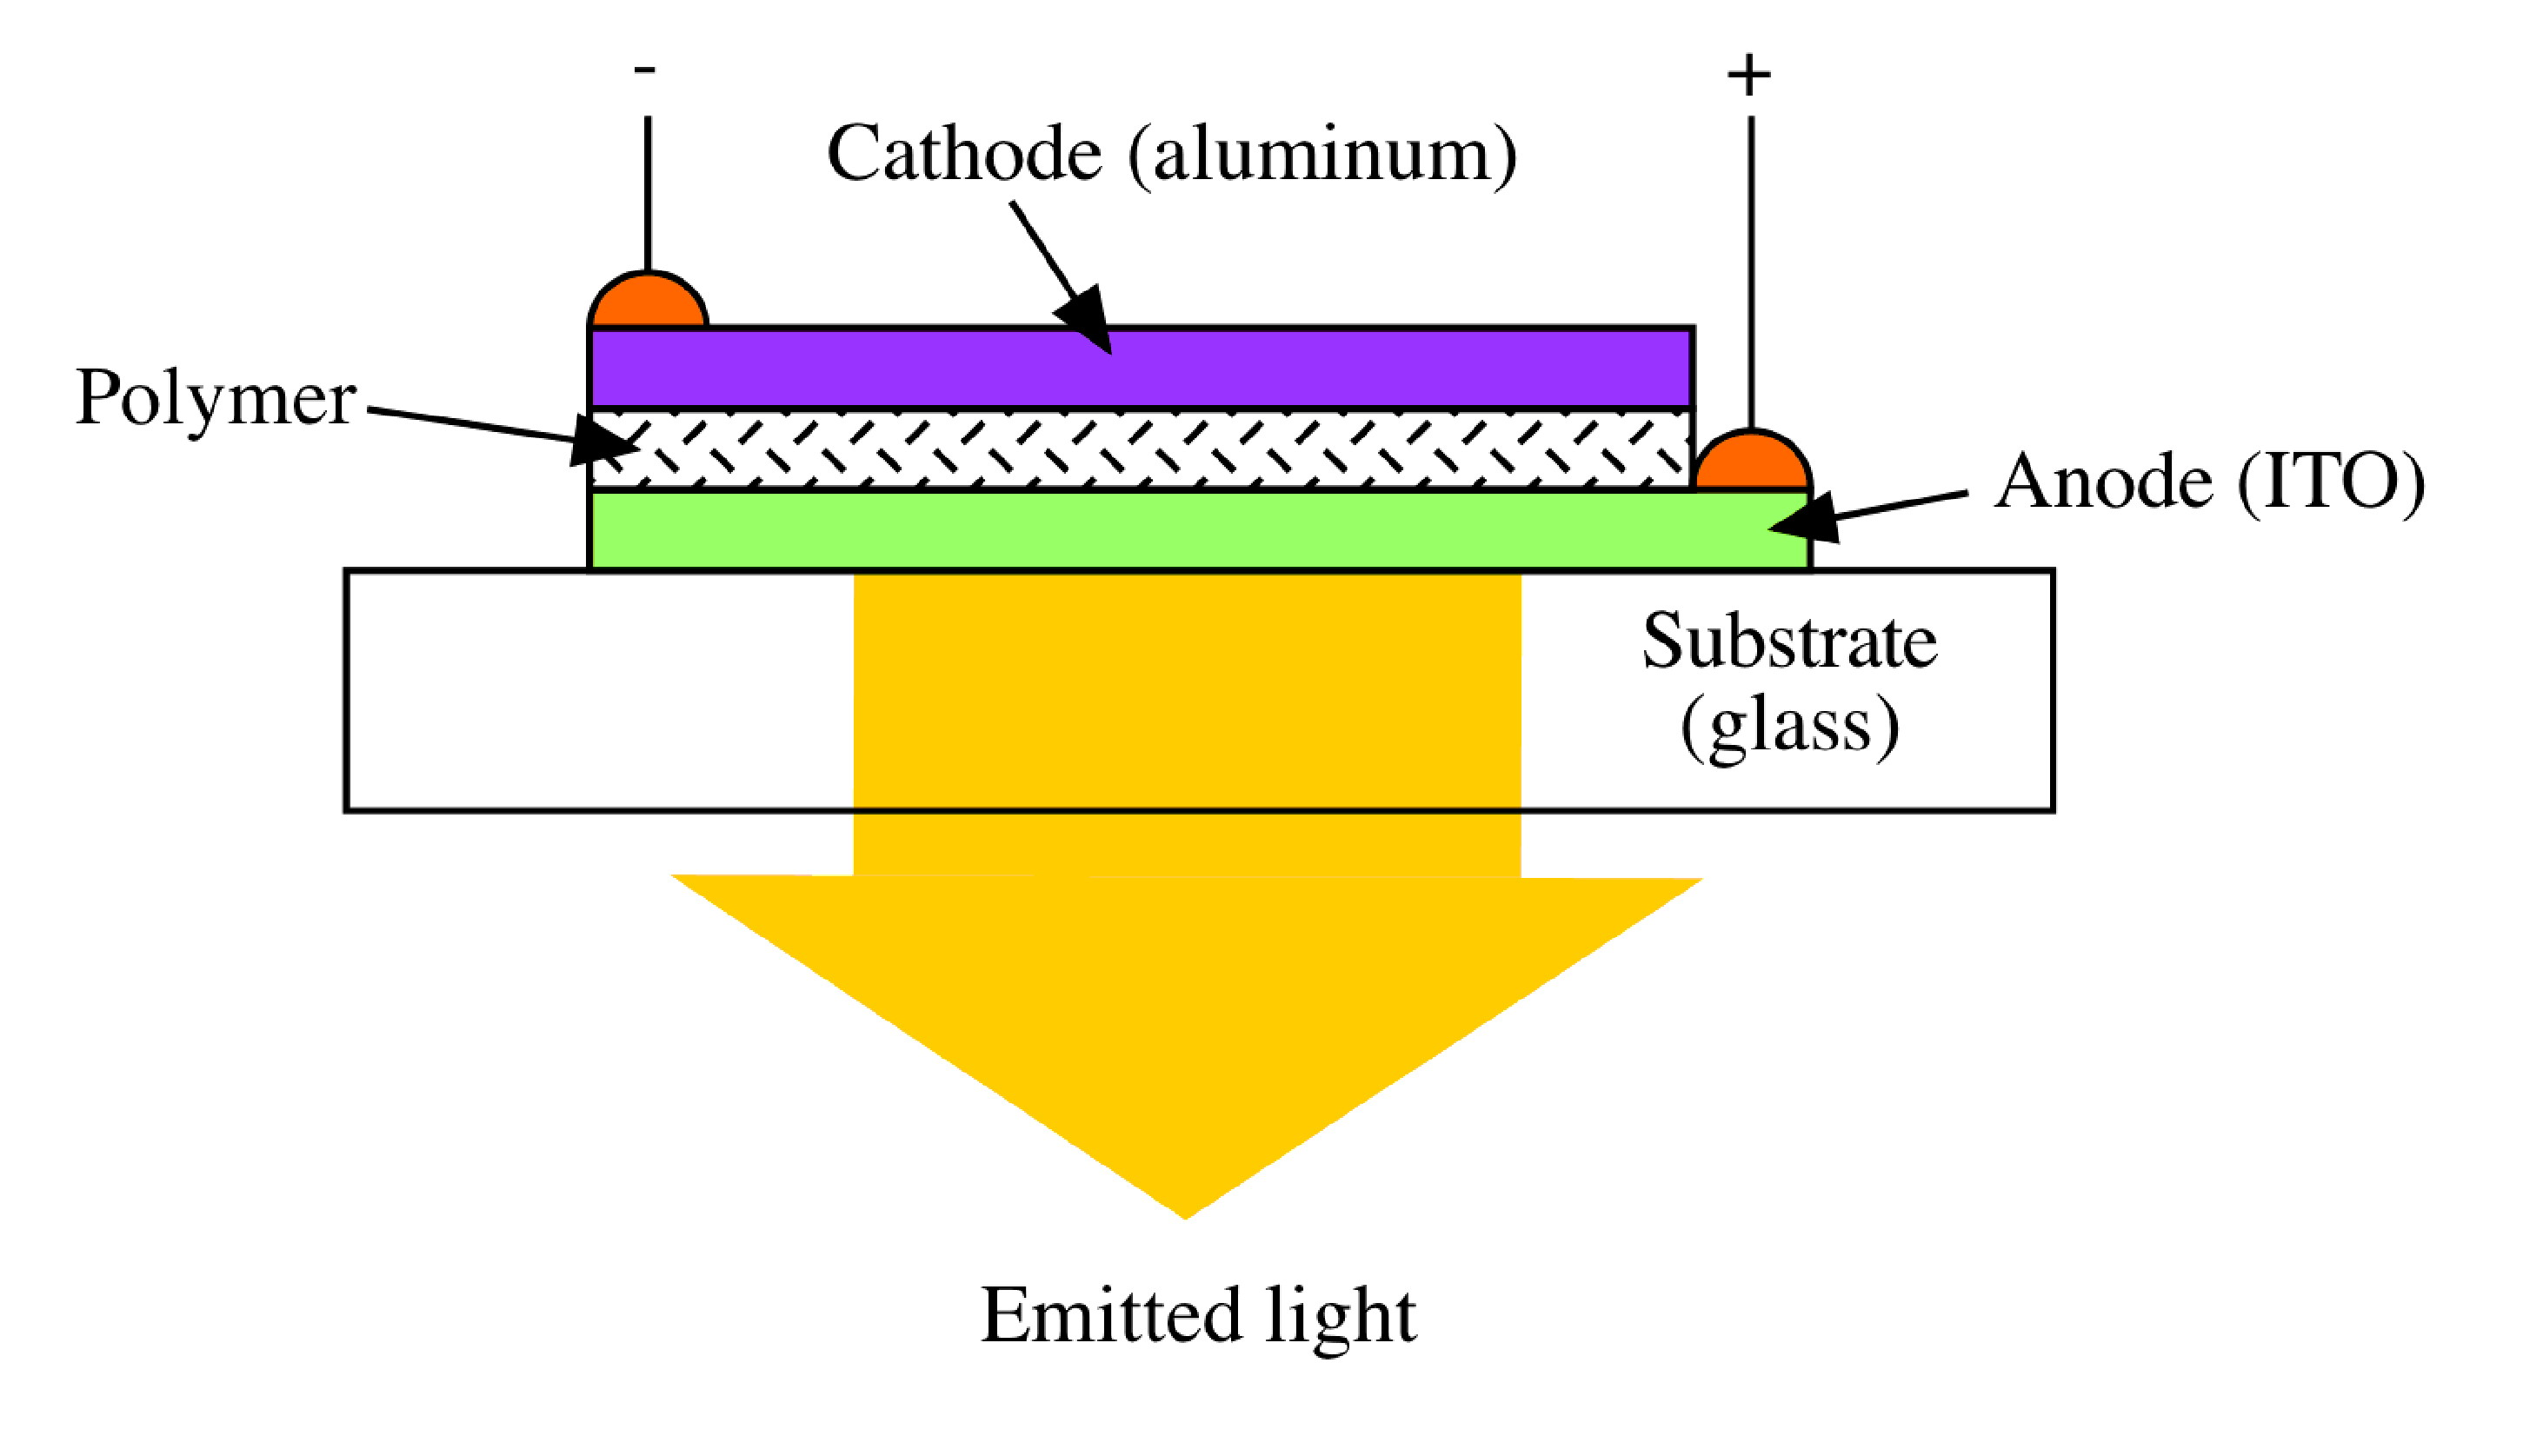 Diode Schematic Diagram Symbols Cathode Side Of Flow Circuit Symbol Led Gallery Polymer Light Emitting Diodes On Chart Testing